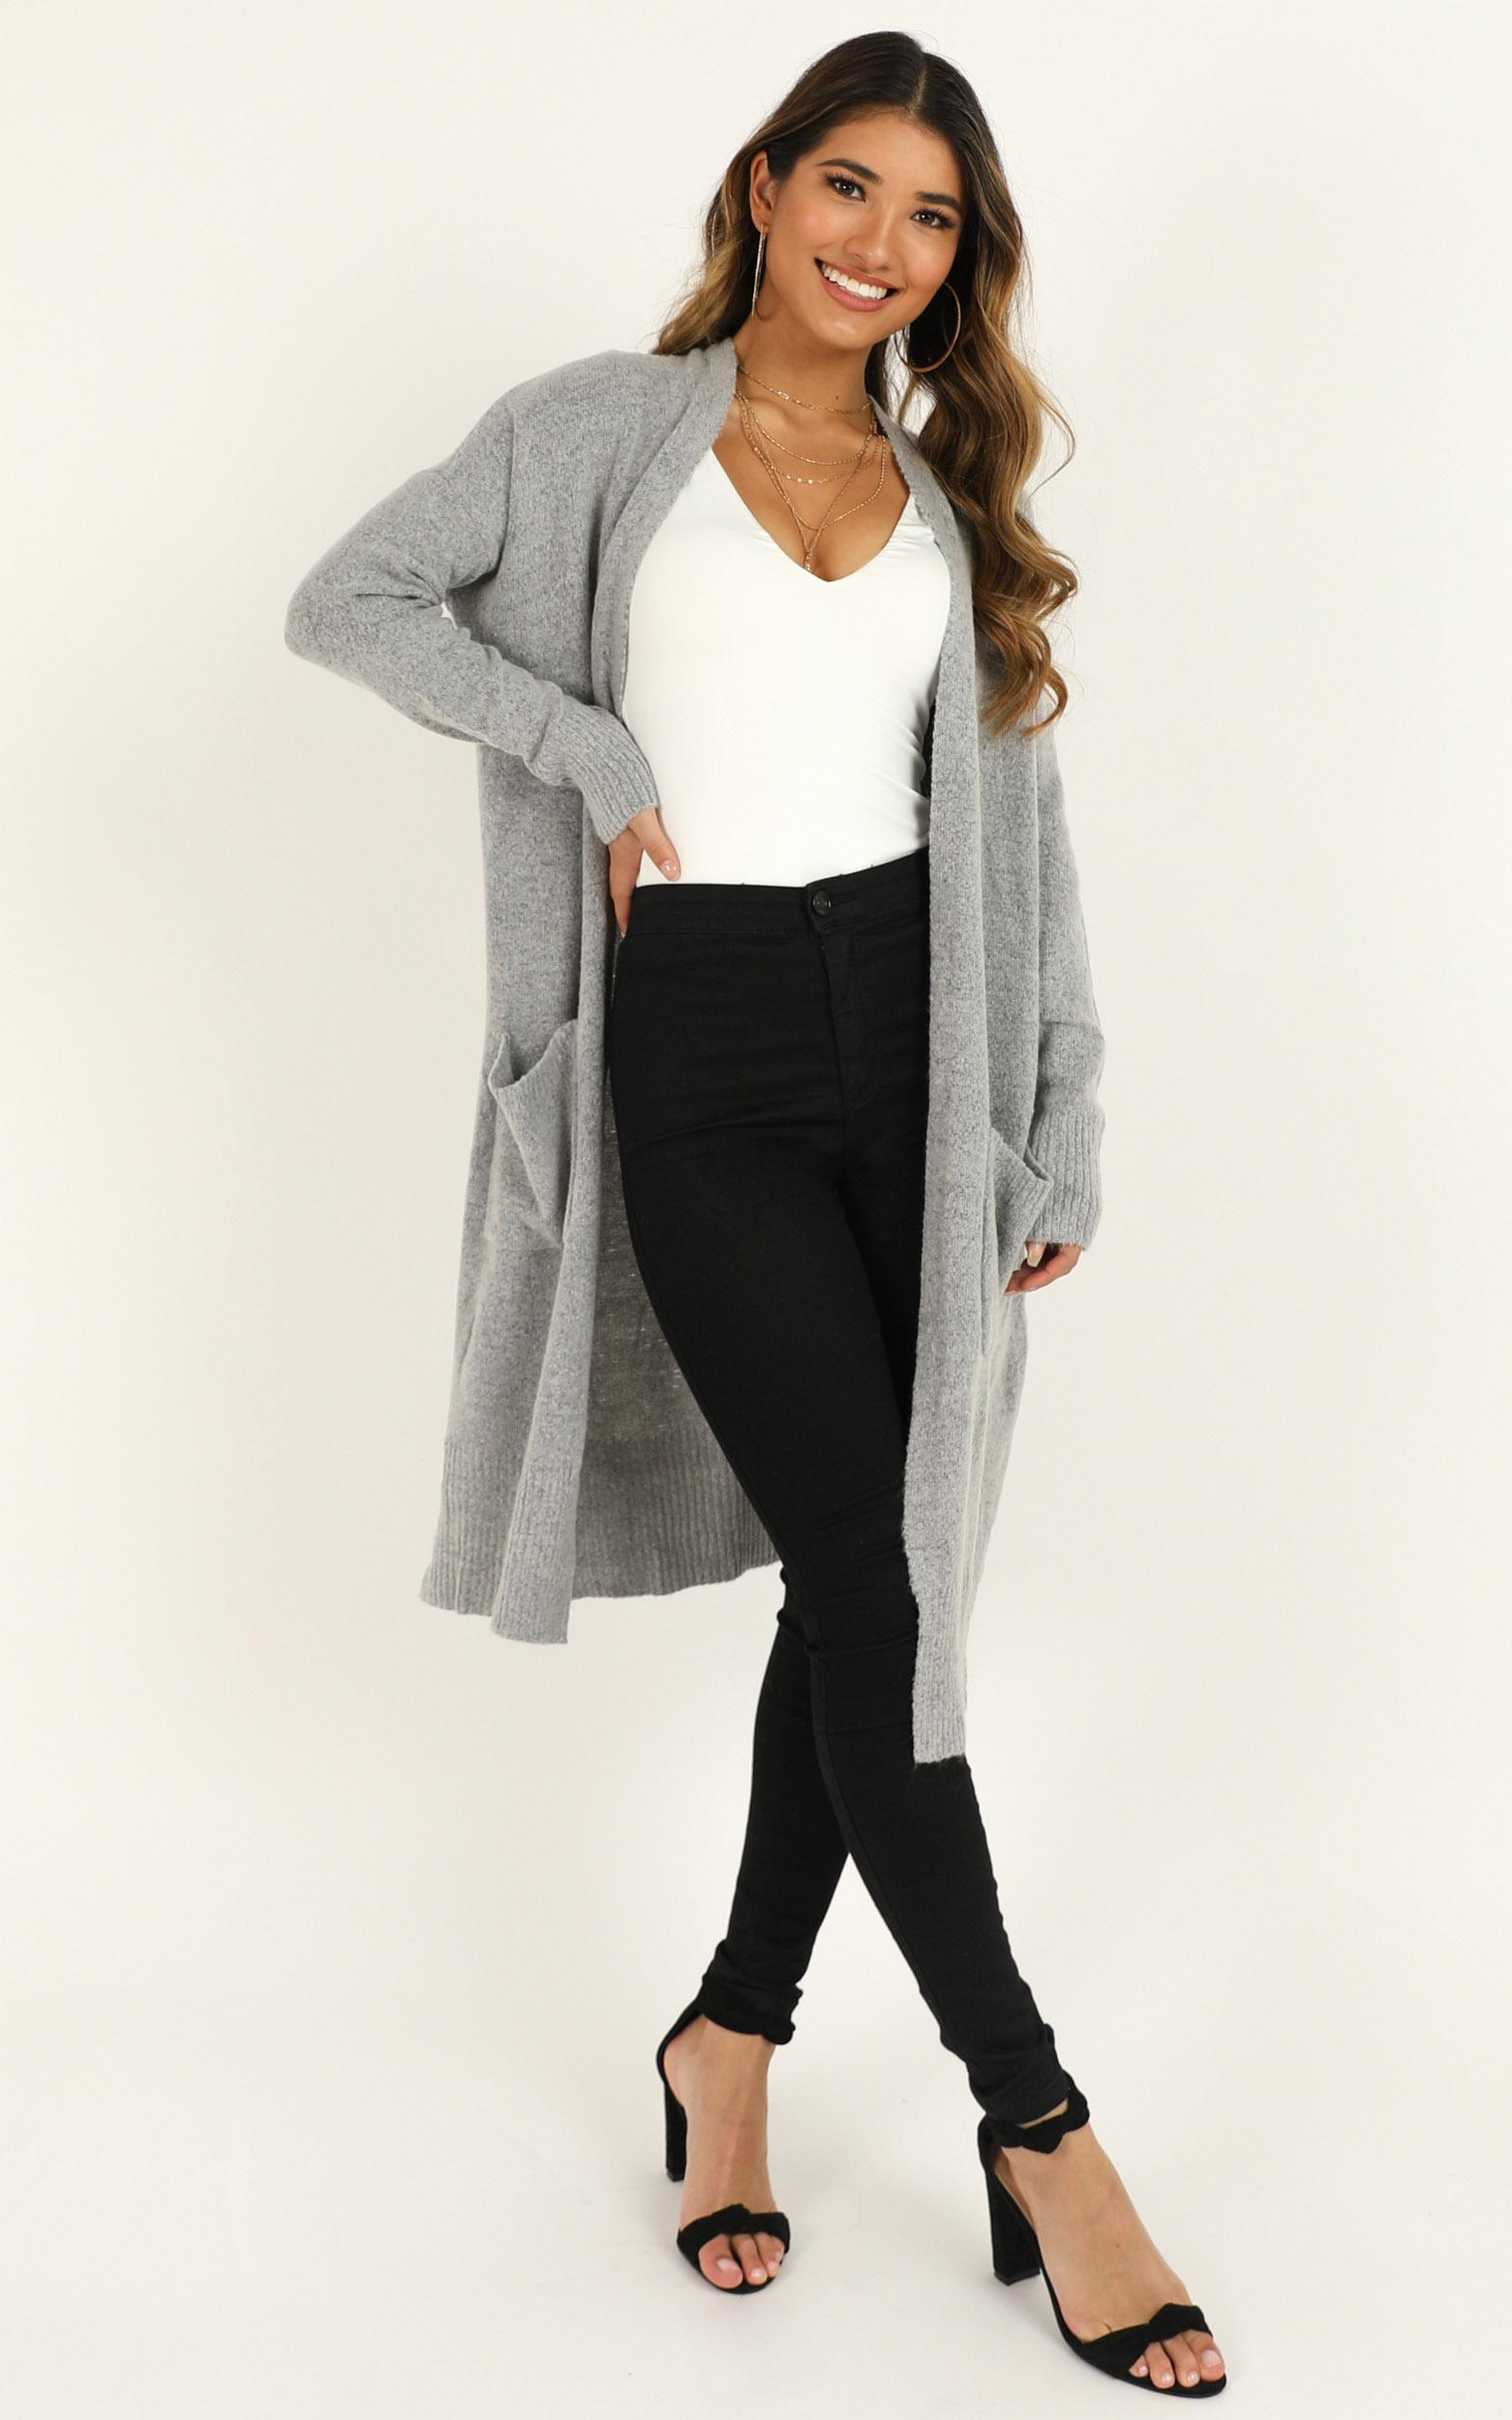 League of Your Own Cardigan in grey - 14 (XL), Grey, hi-res image number null